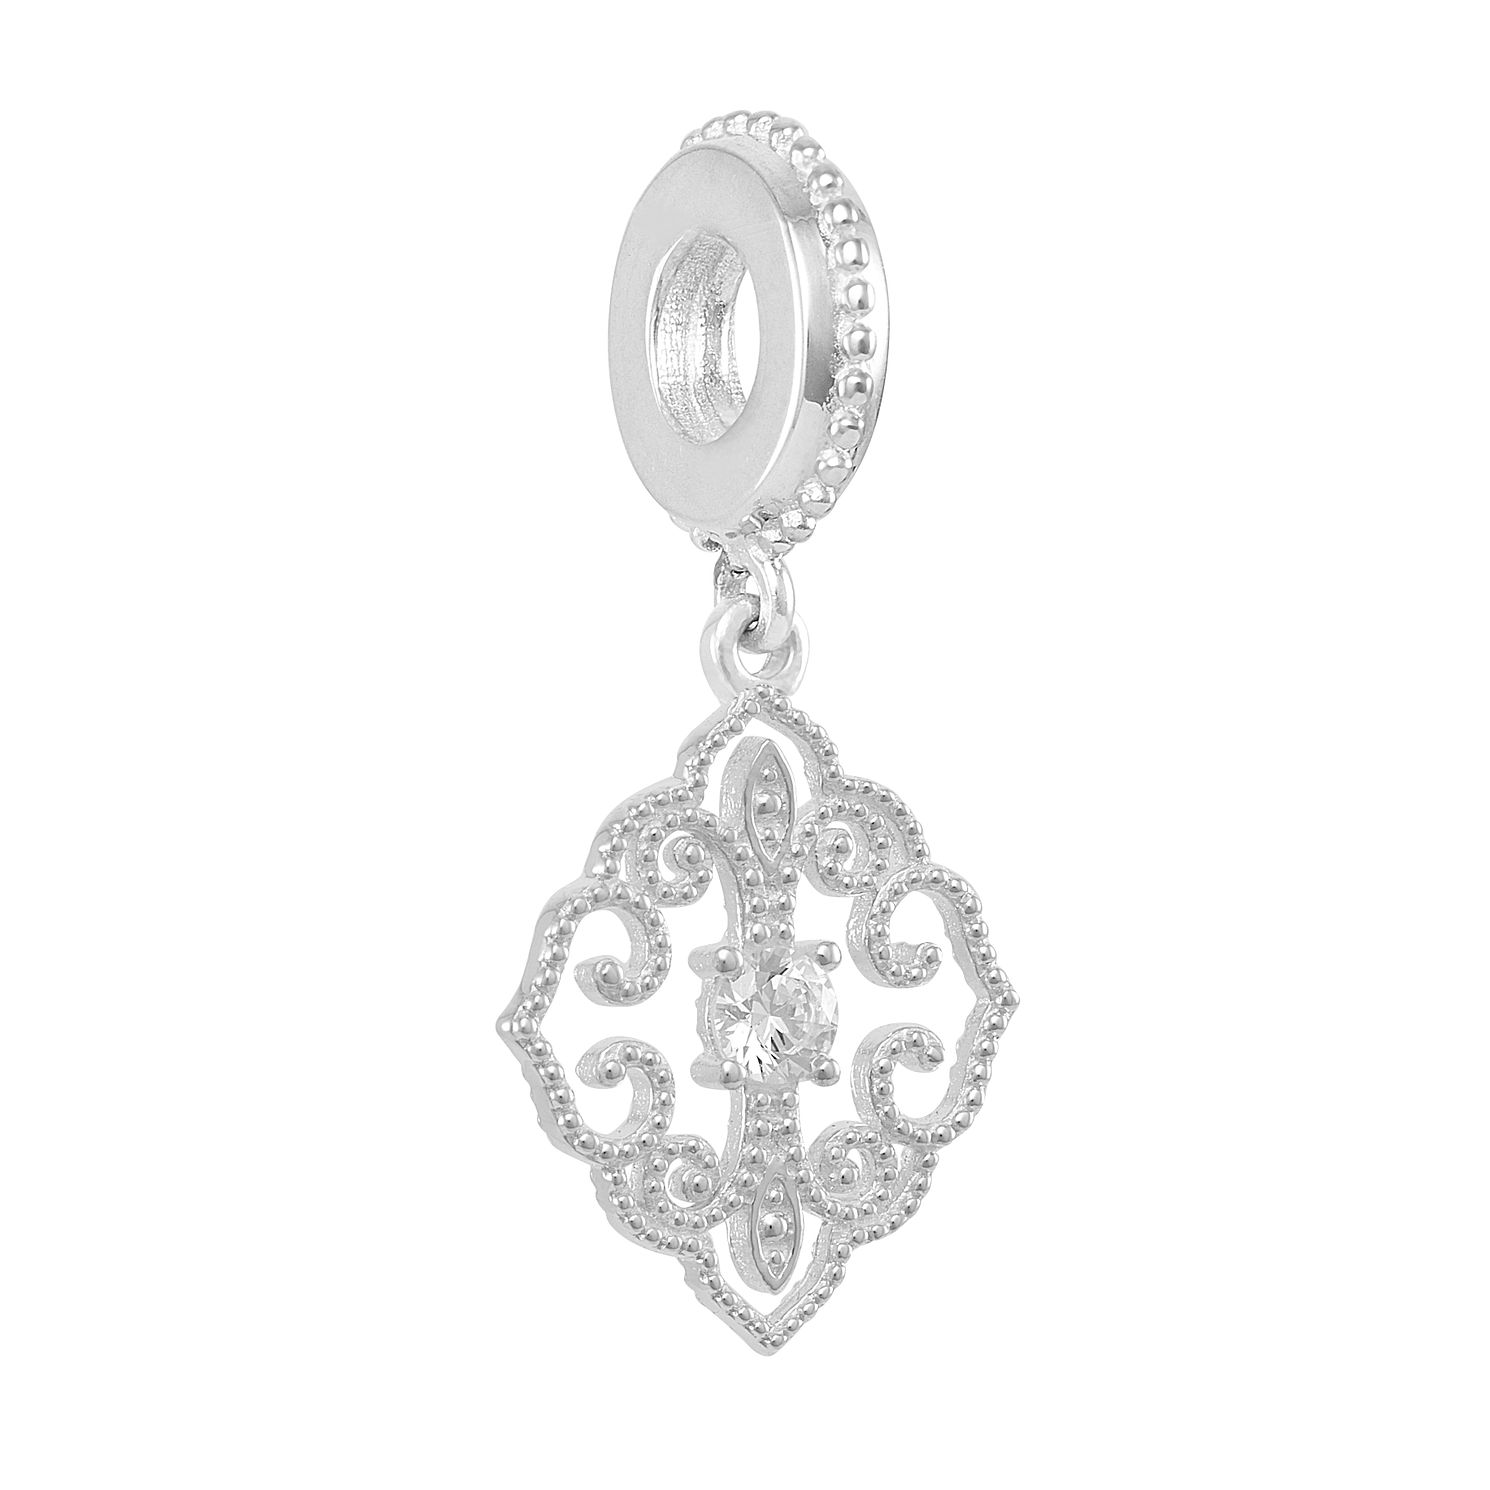 Chamilia Timeless Ornament Charm with Swarovski Zirconia - Product number 2219468